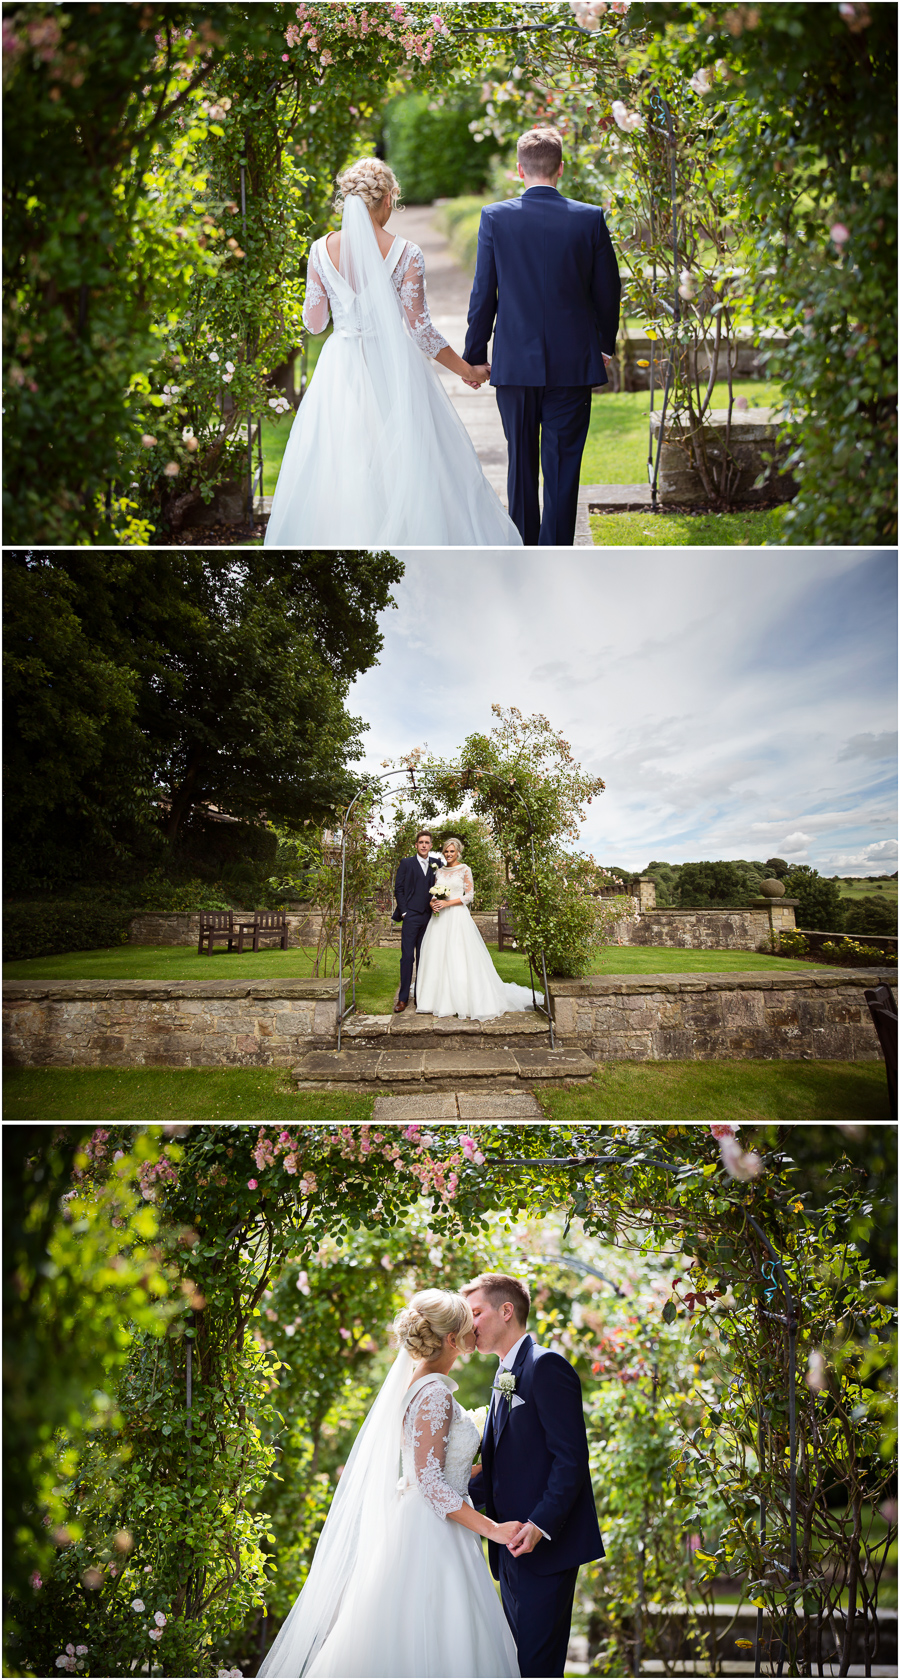 Wedding at Wood Hall - couple portraits in the gardens